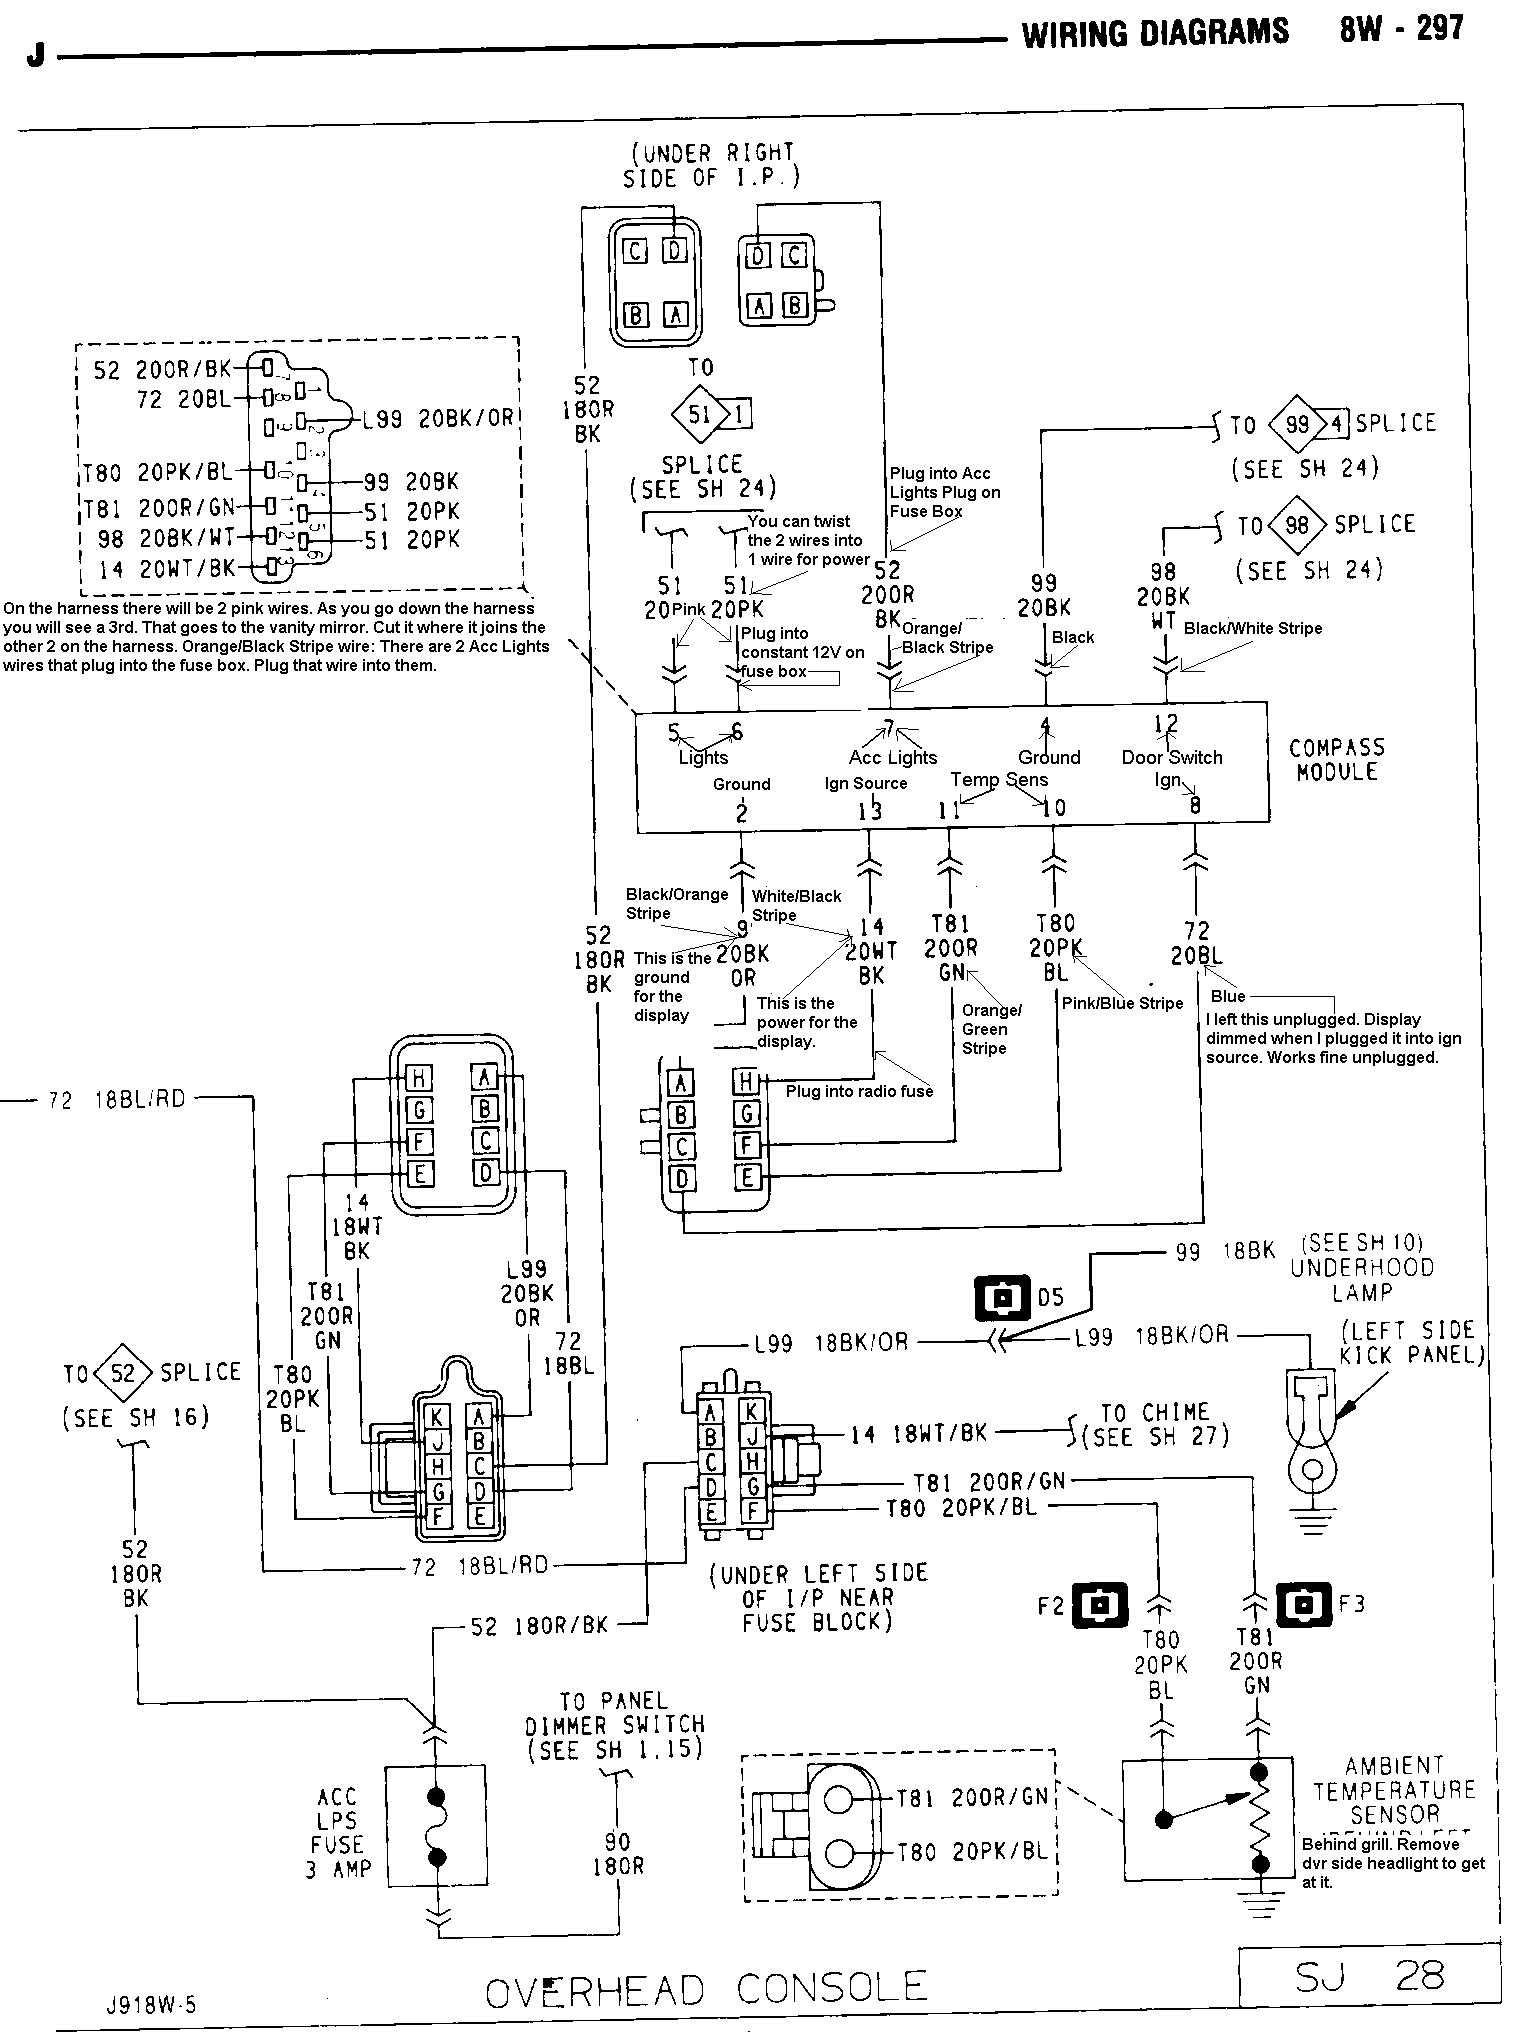 91consolediagrammodified tom 'oljeep' collins fsj wiring page jeep cherokee overhead console wiring diagram at creativeand.co